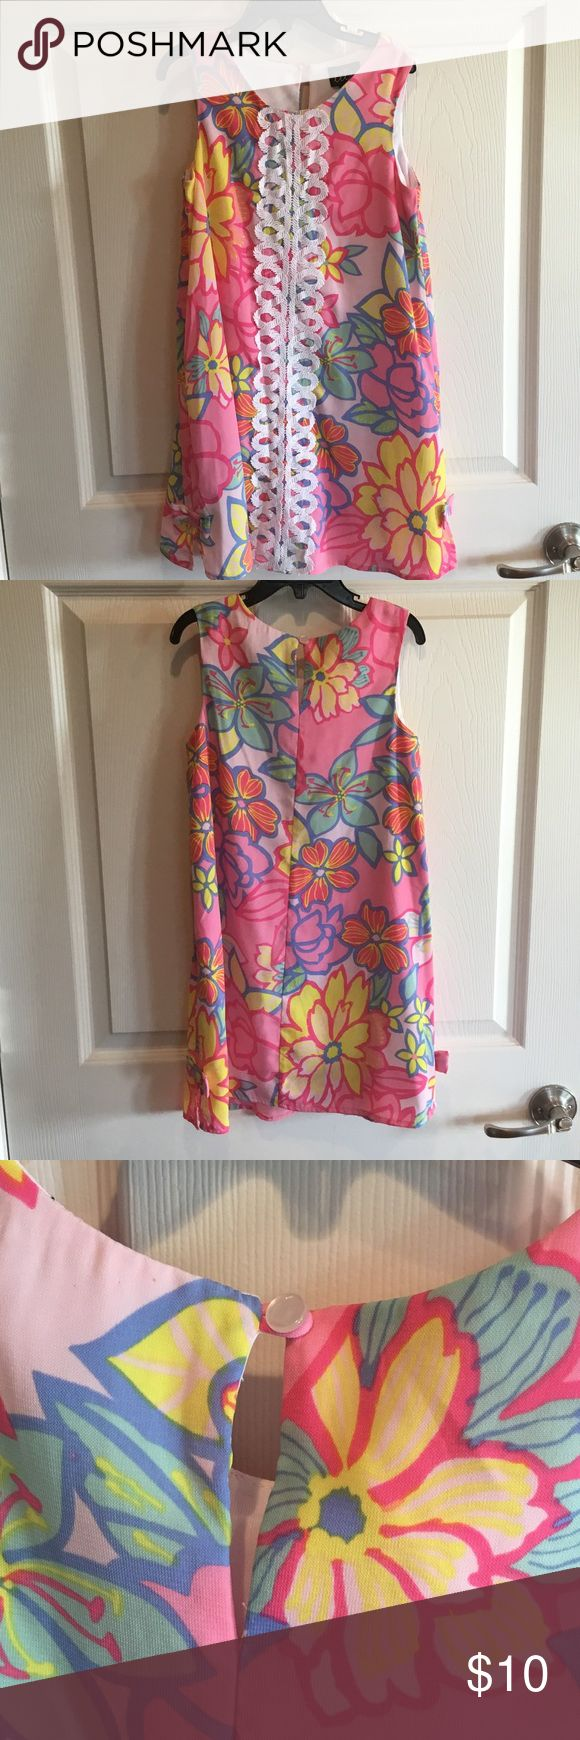 Lilt Floral Tank Dress Fun Floral Dress with white trim down the center, worn once, both side seams have a bow at the bottom of the dress (shown in picture), self, lining, and lace trim all 100% polyester Lilt Dresses Midi